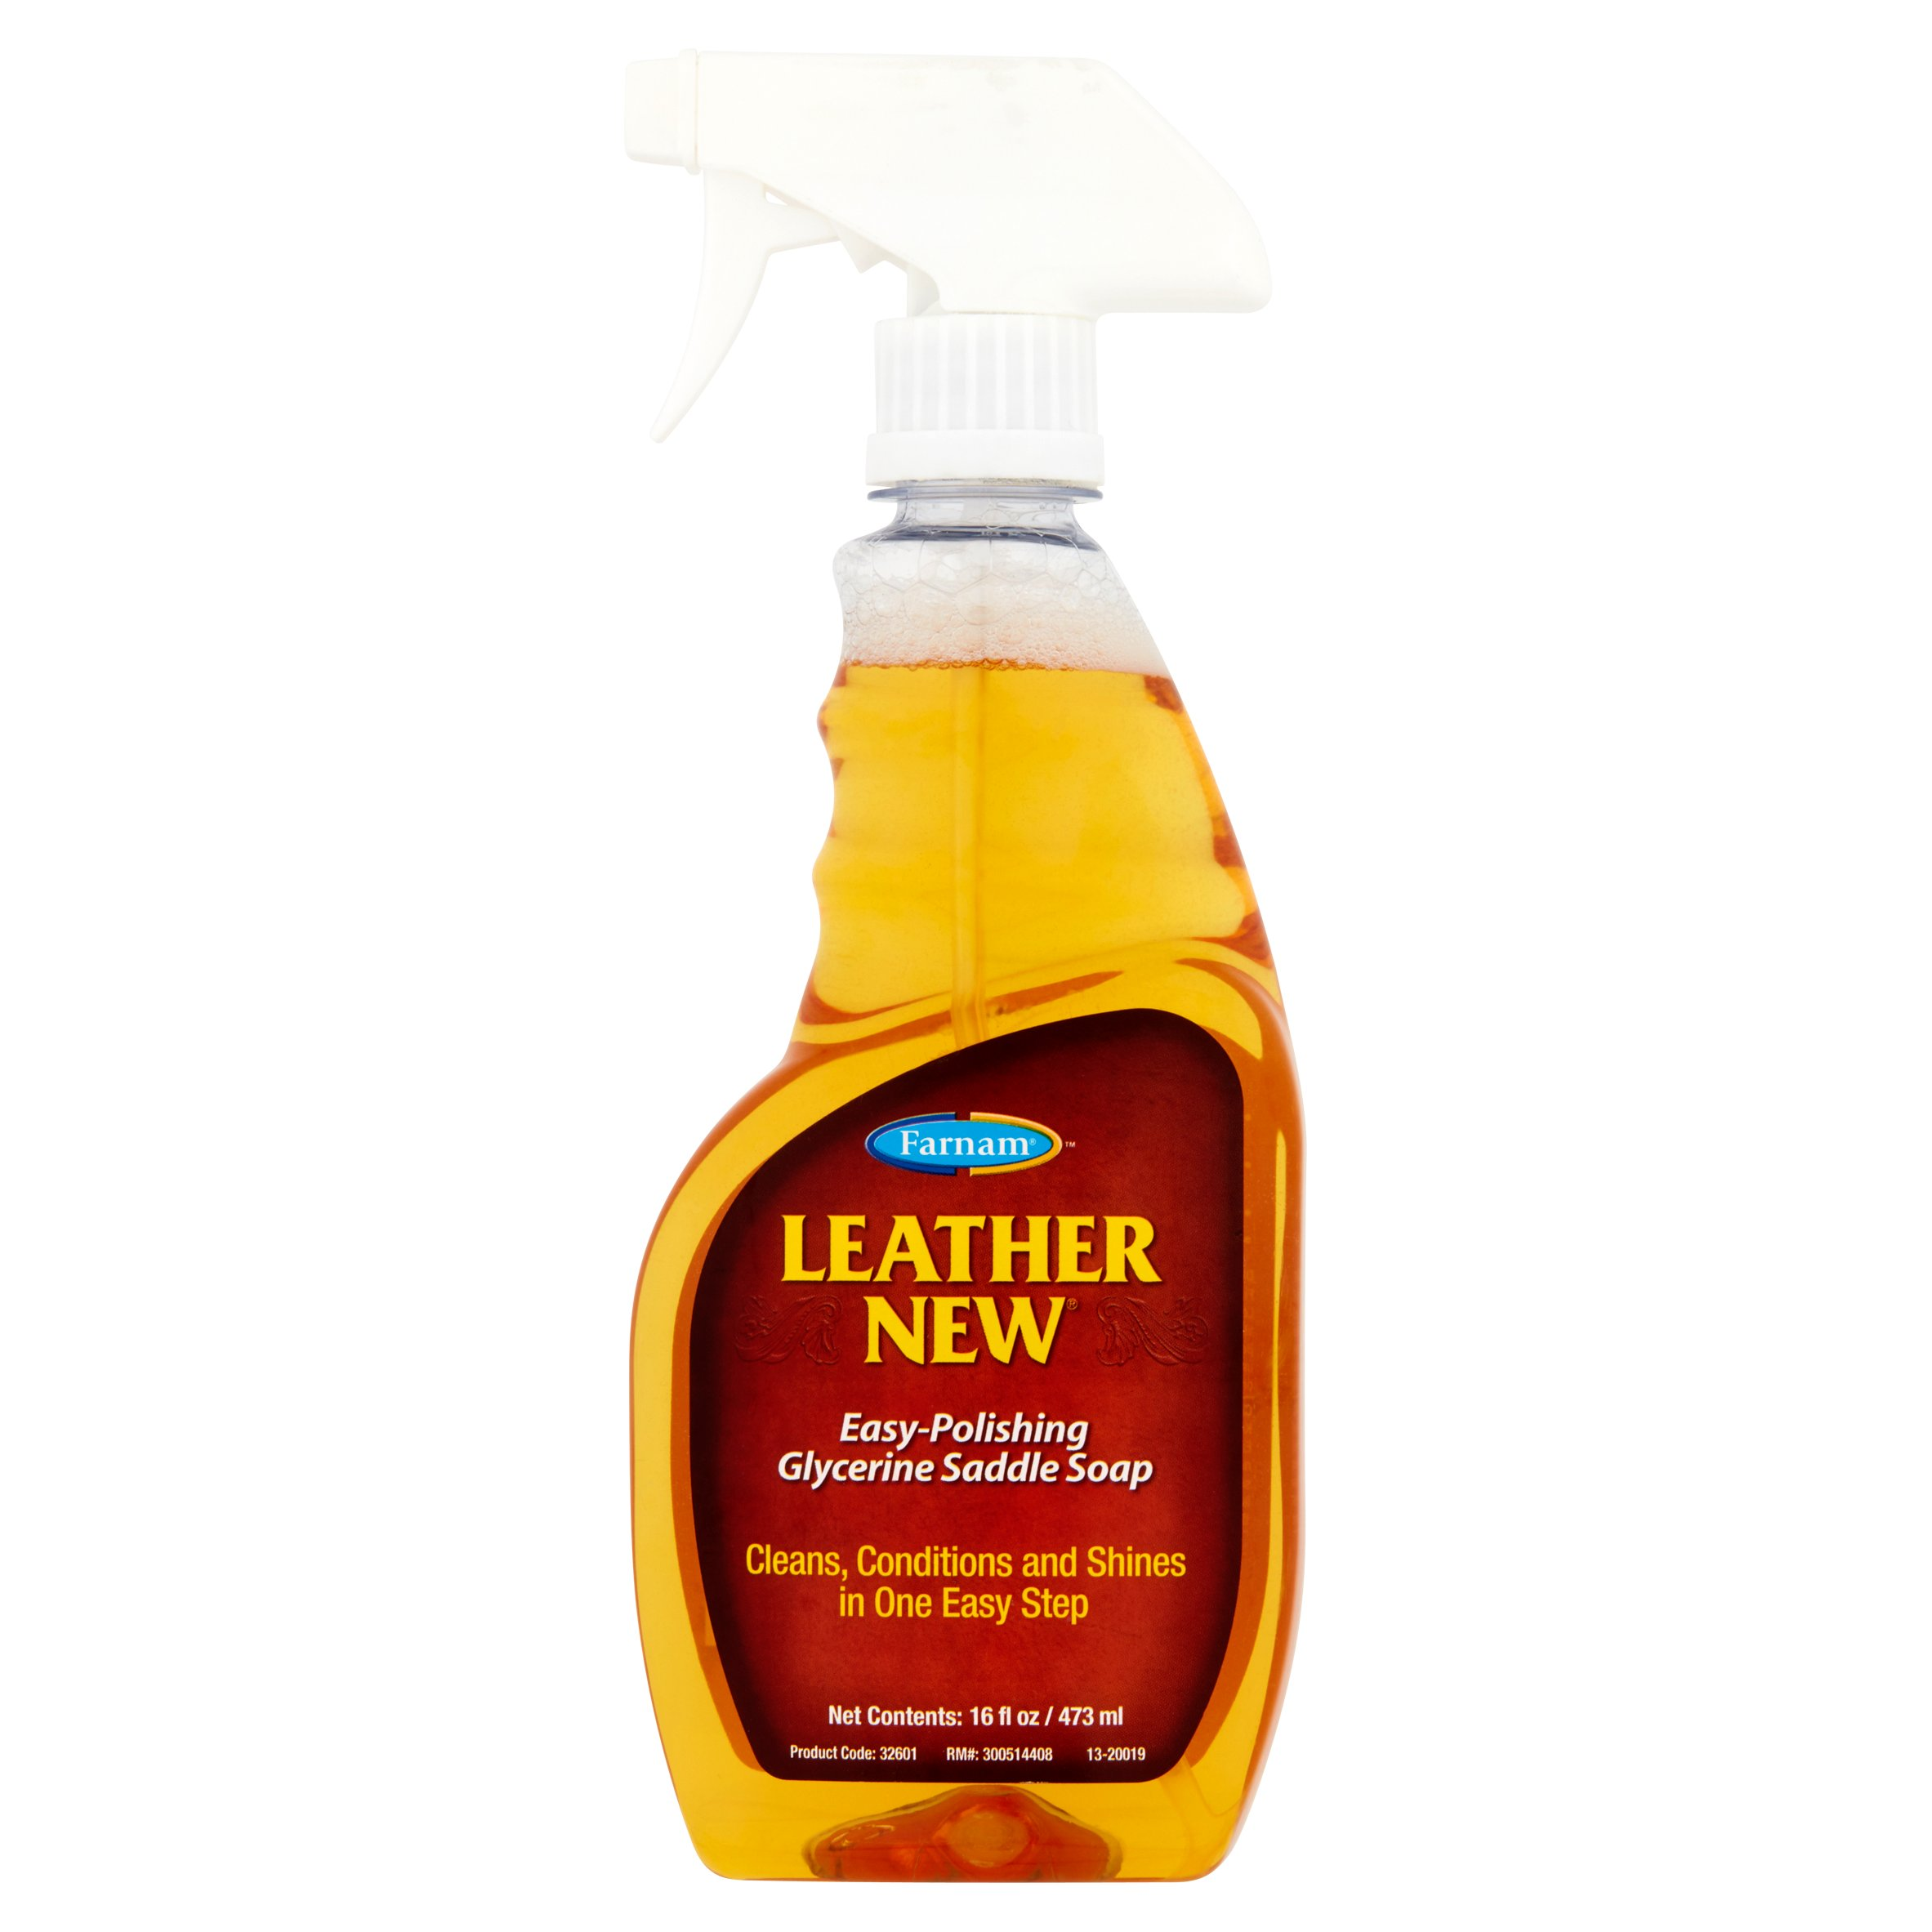 Farnam Leather New Easy-Polishing Glycerine Saddle Soap, 16 fl. oz.